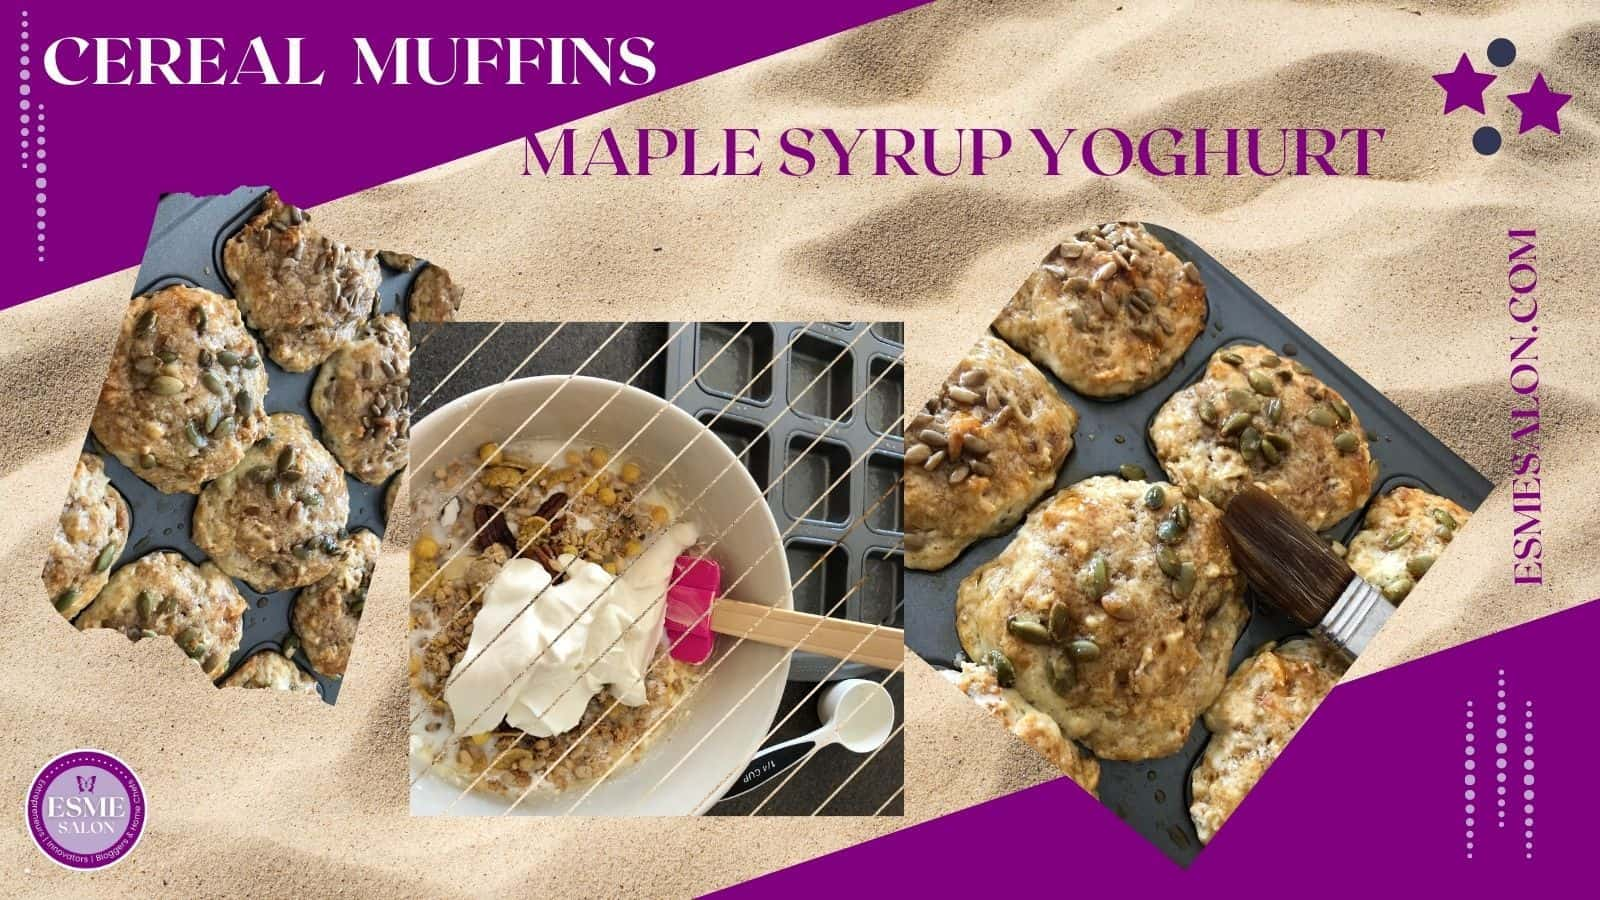 Cereal Maple Syrup Yoghurt Muffins in baking pan with a bowl of the ingredients in the center and pepitas and hone on the tops of the muffins